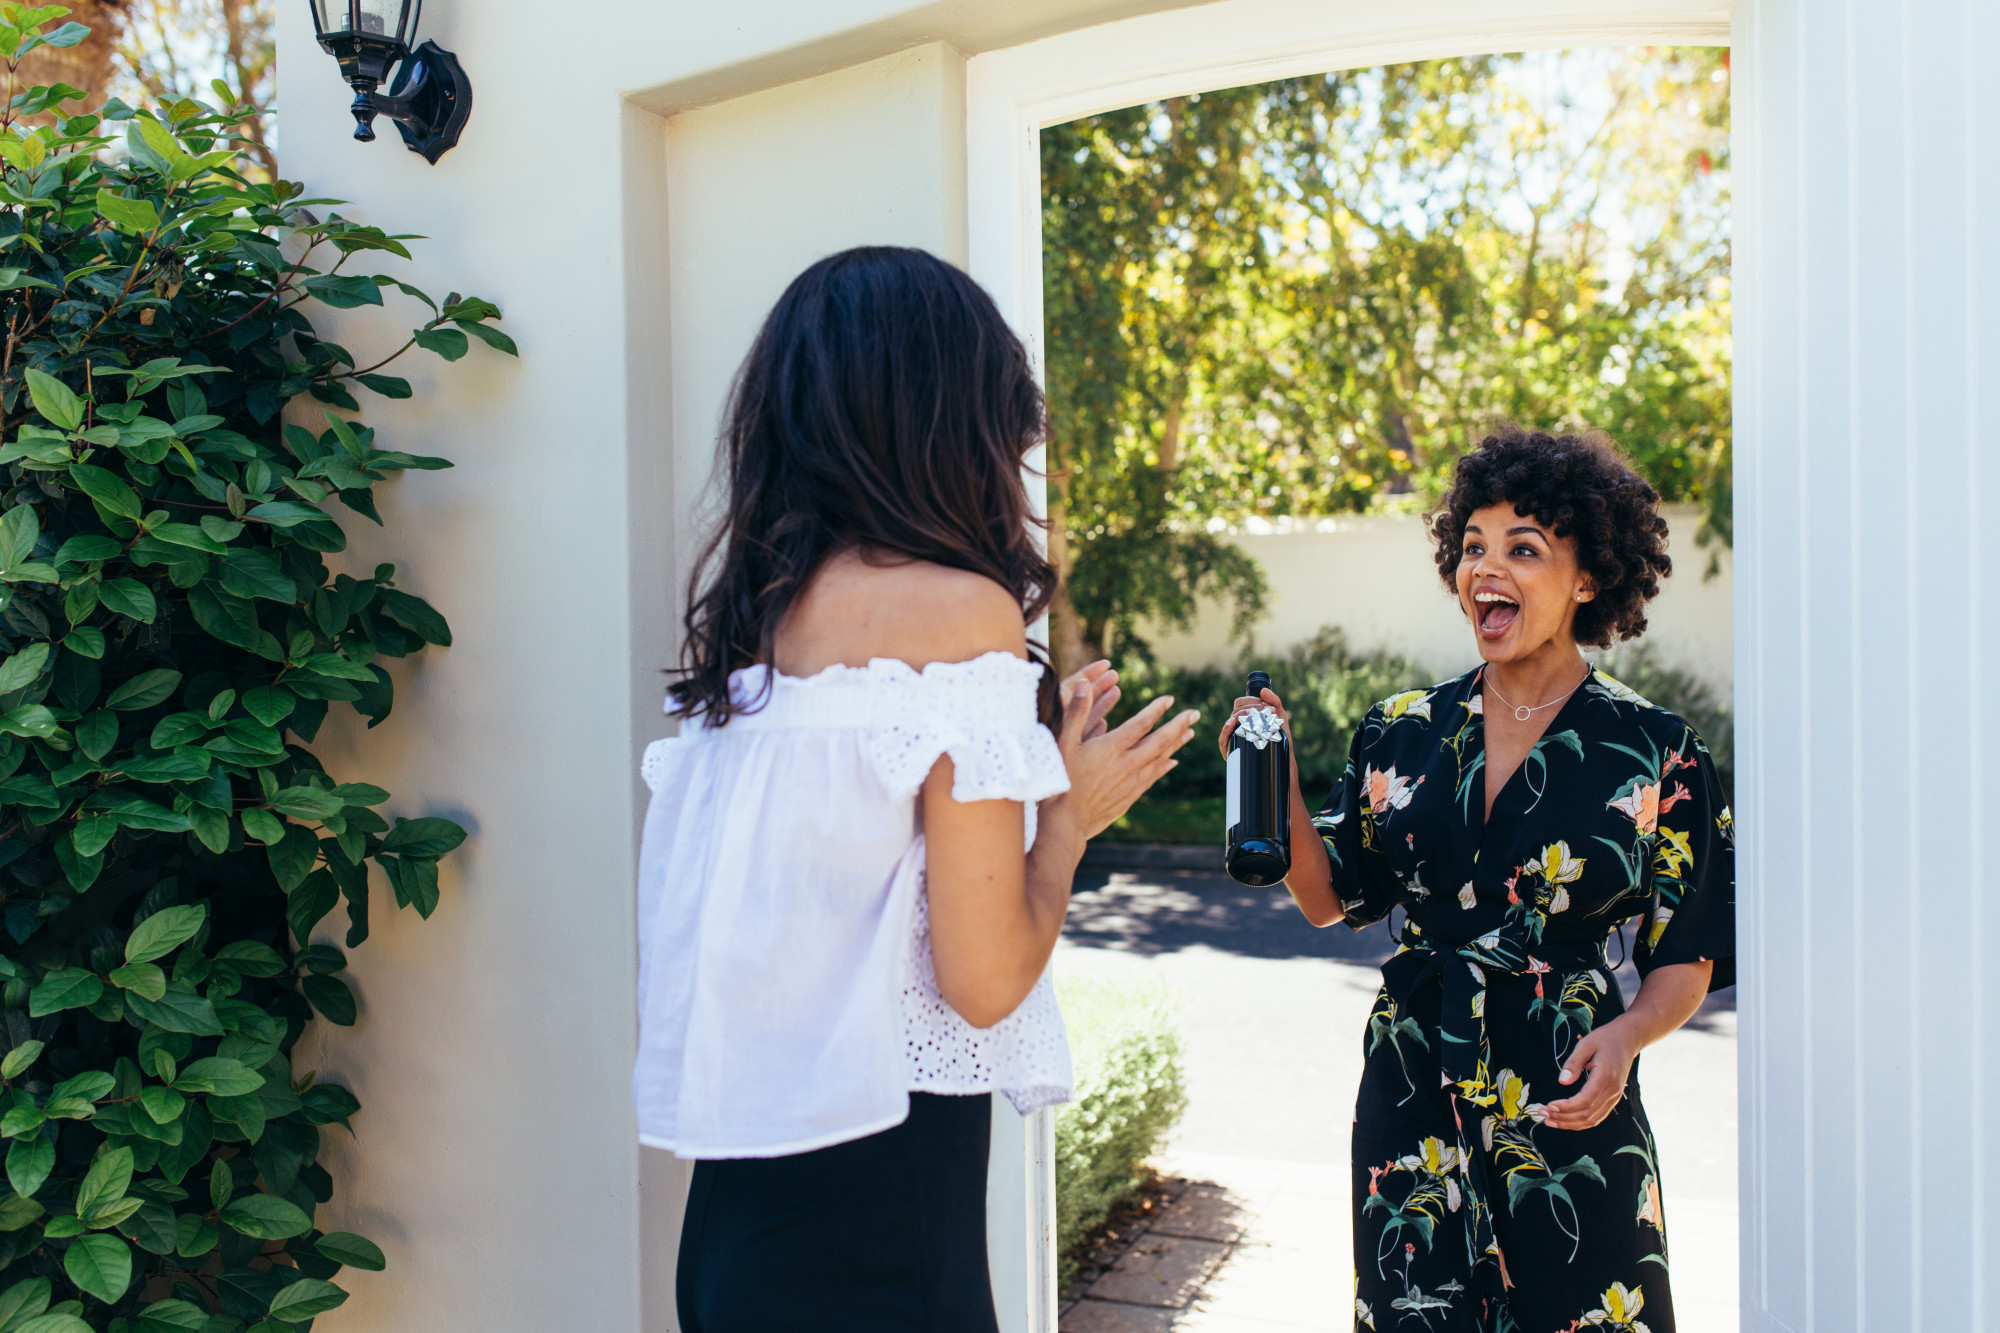 Be a Good Neighbor: 7 Unique Housewarming Gifts for a Warm Welcome